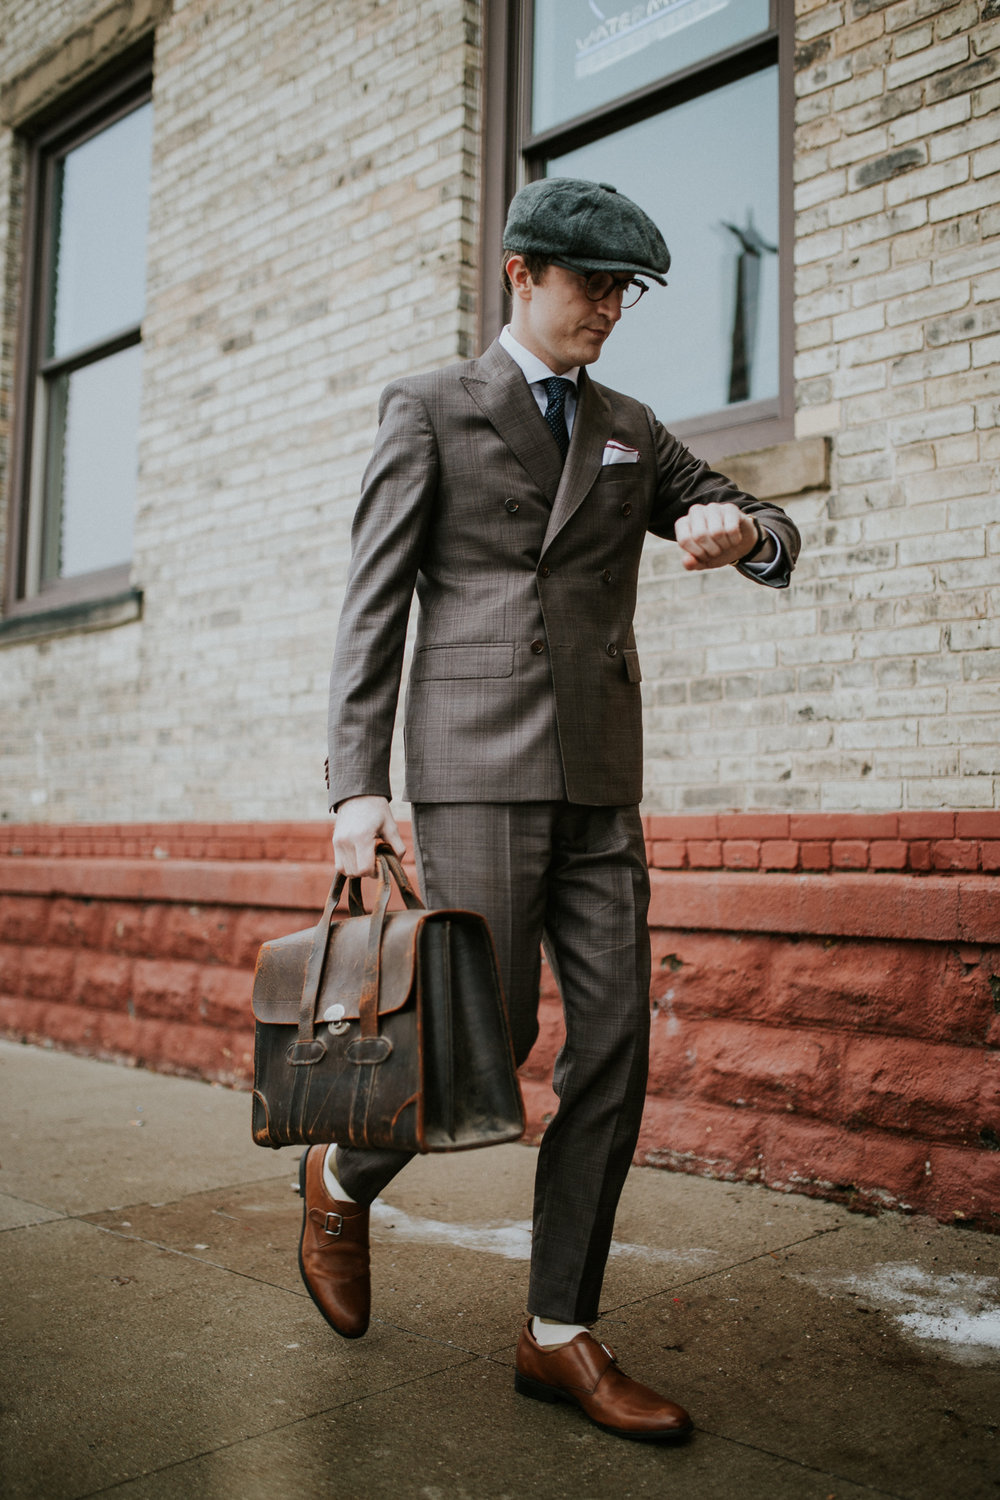 Strong Suit Clothing - MTM and OTR Suiting